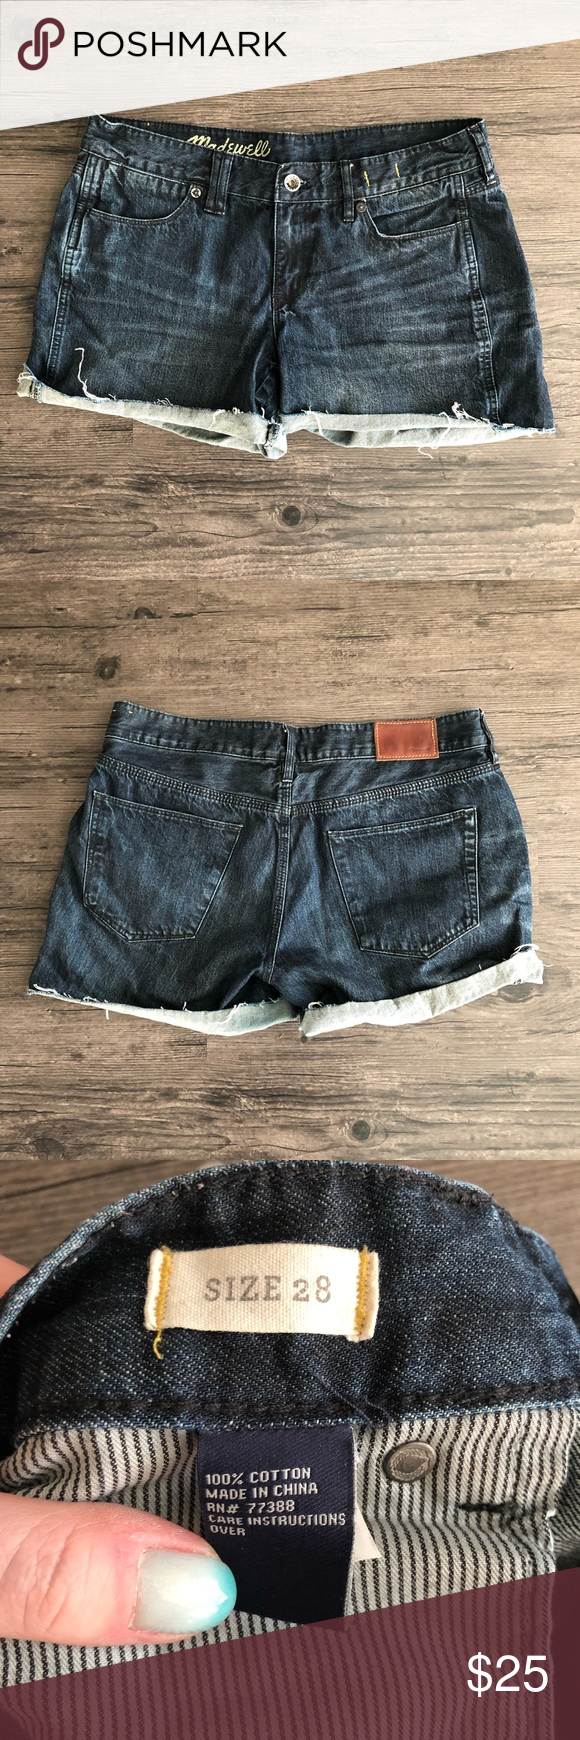 Madewell Denim Cutoff Shorts - 28 True to size, Madewell denim cutoff shorts in a dark wash. Lightly used and in great condition, no stains or holes. Madewell Shorts Jean Shorts #denimcutoffshorts